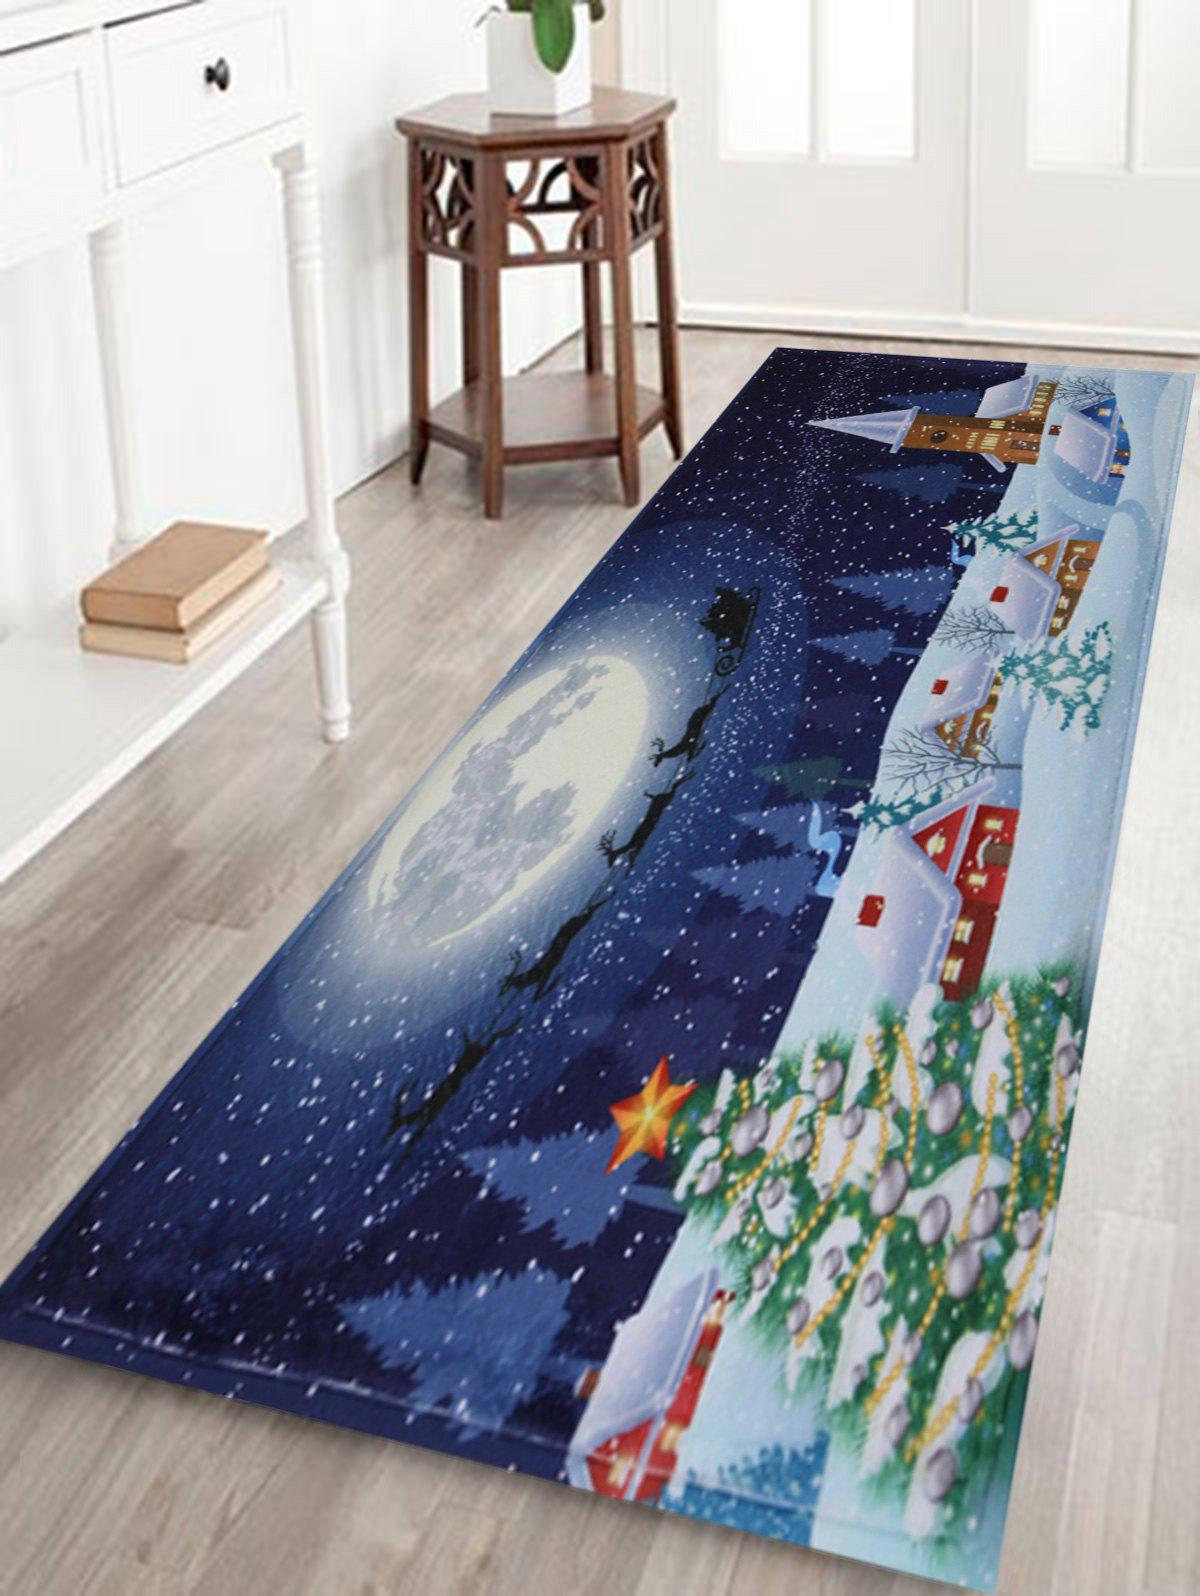 2018 tapis de salle de bain antid rapant motif lune neige et sapin de no l bleu largeur pouces. Black Bedroom Furniture Sets. Home Design Ideas